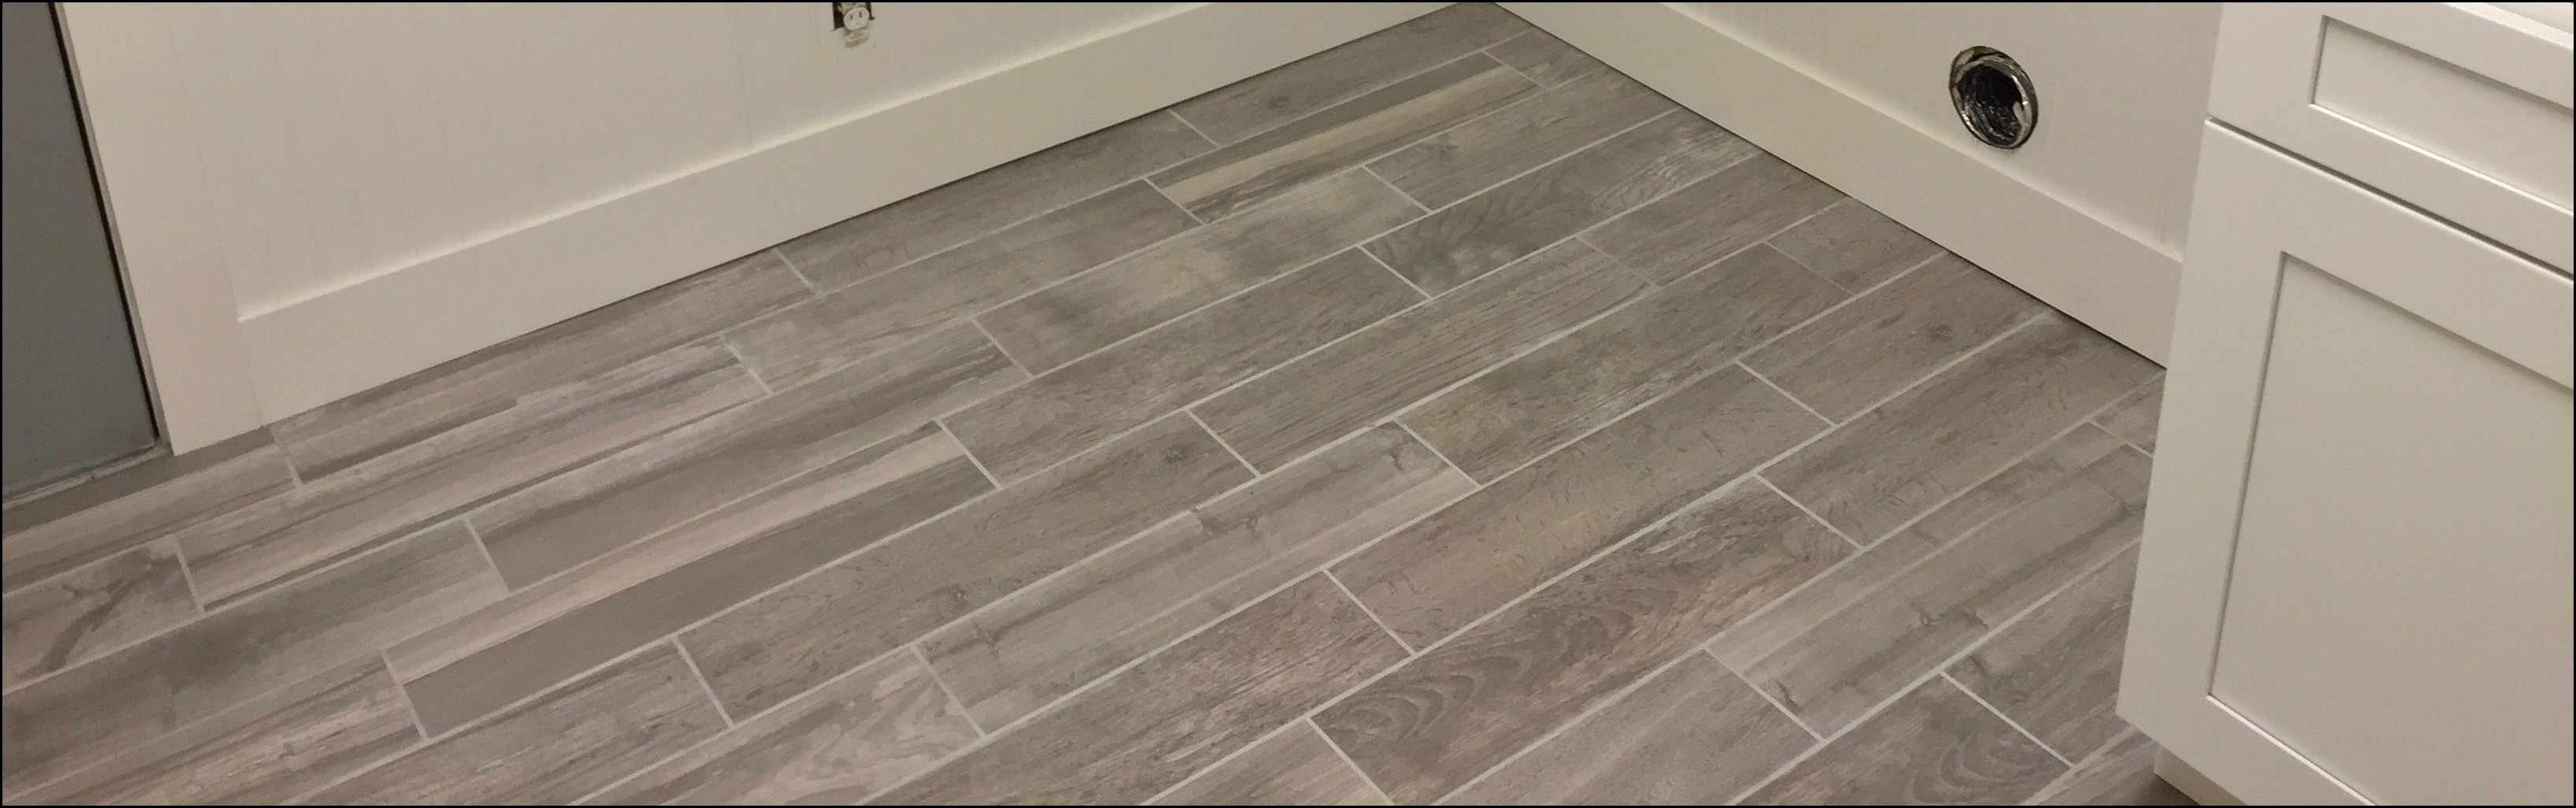 How To Set up Wooden Look Tile |